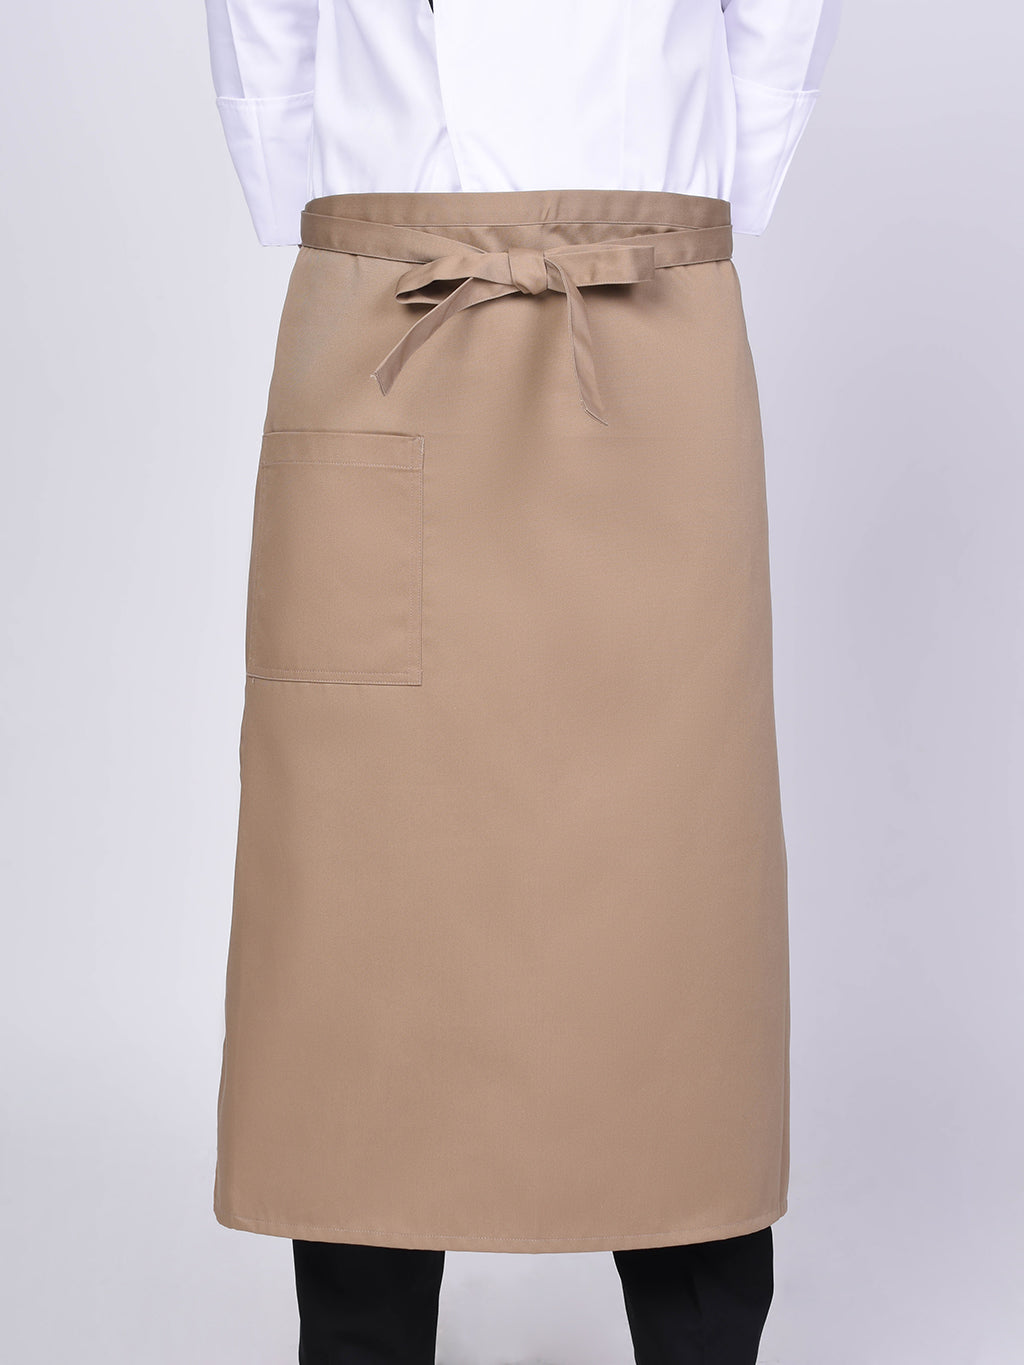 Khaki Chef Apron - Green Chef Wear